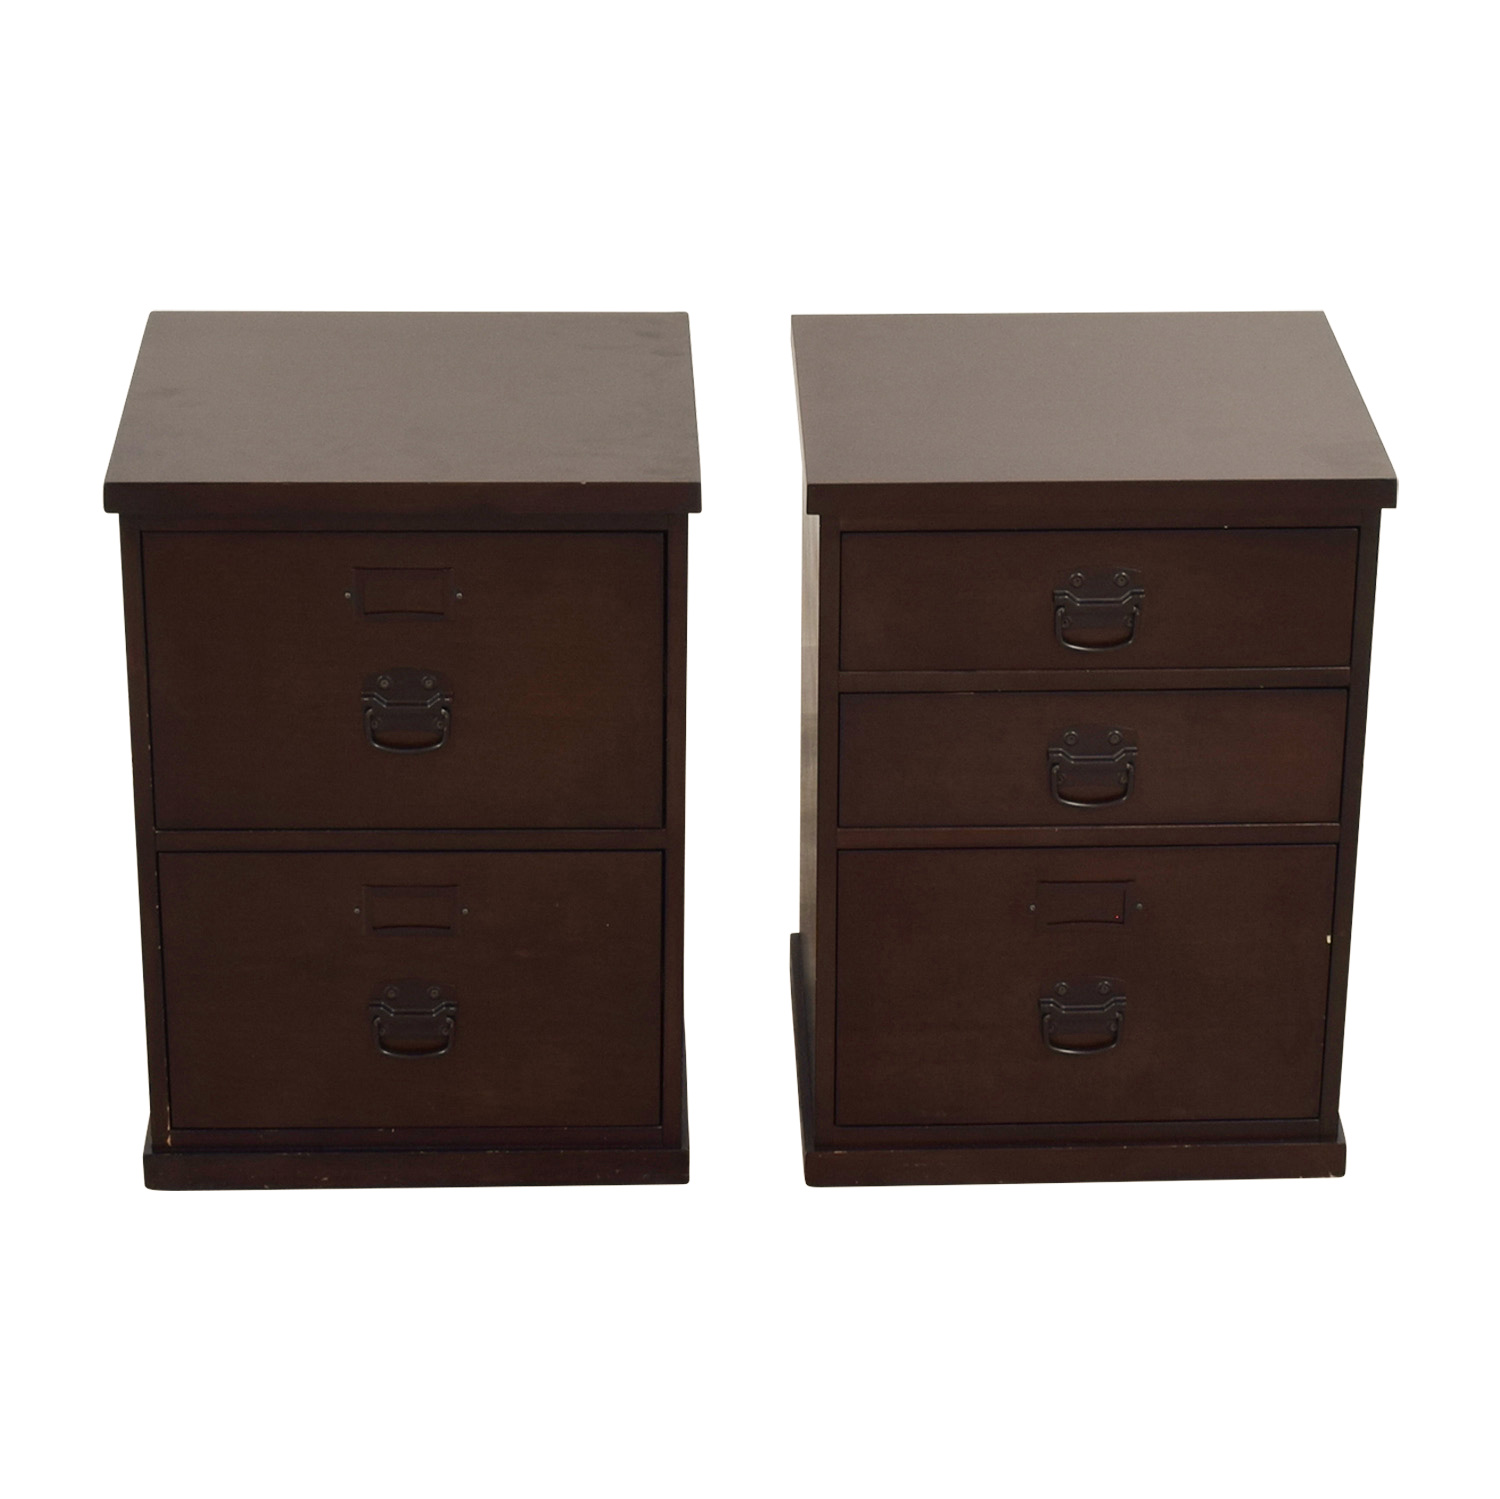 buy Pottery Barn Wood File Cabinets Pottery Barn Storage